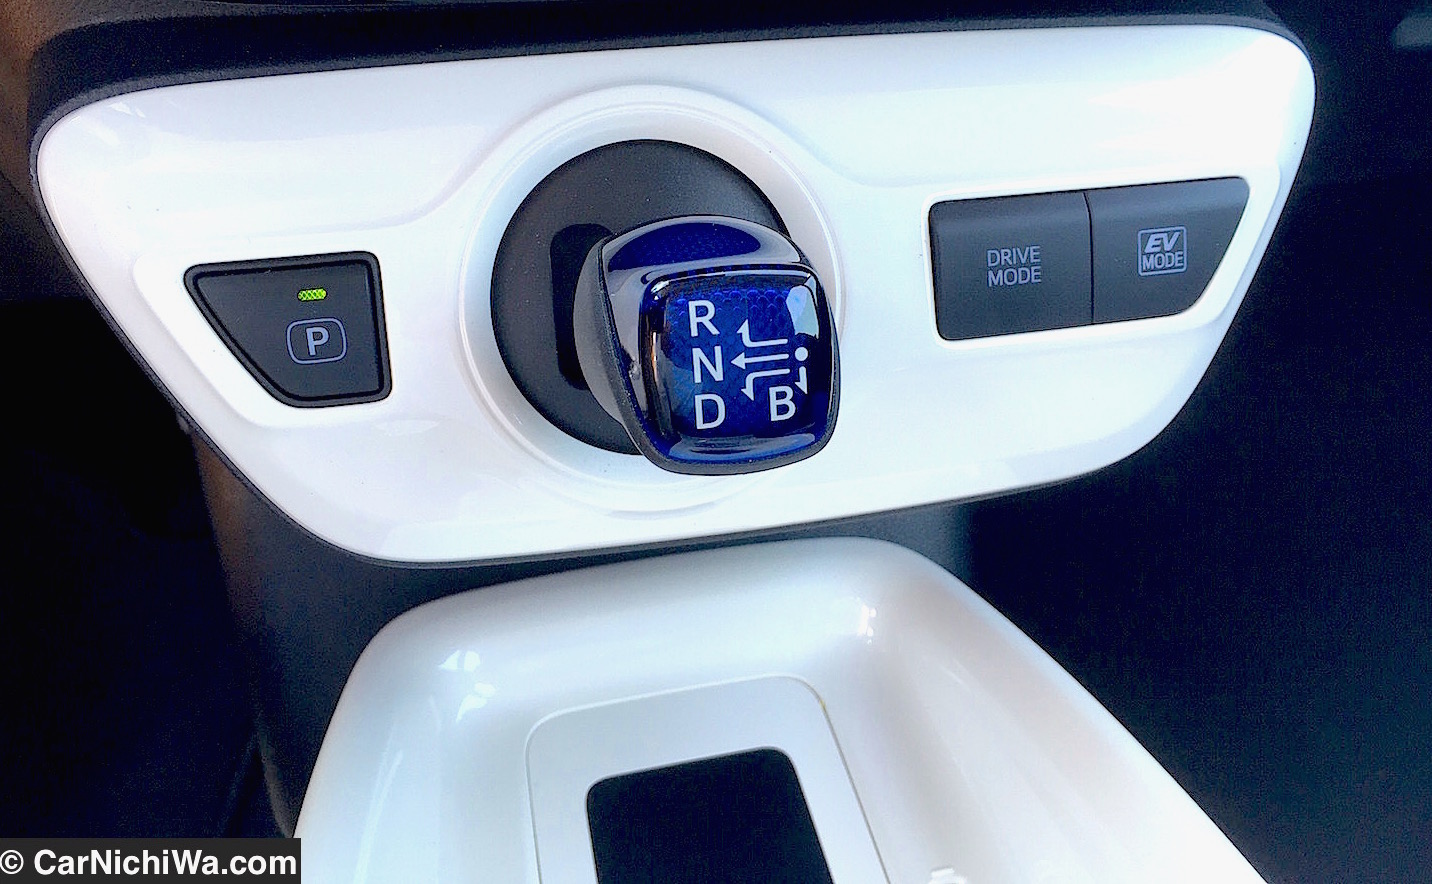 A Separate P On Above Left Operates The Electronically Controlled Parking Brake In Addition To Drive Mode Right